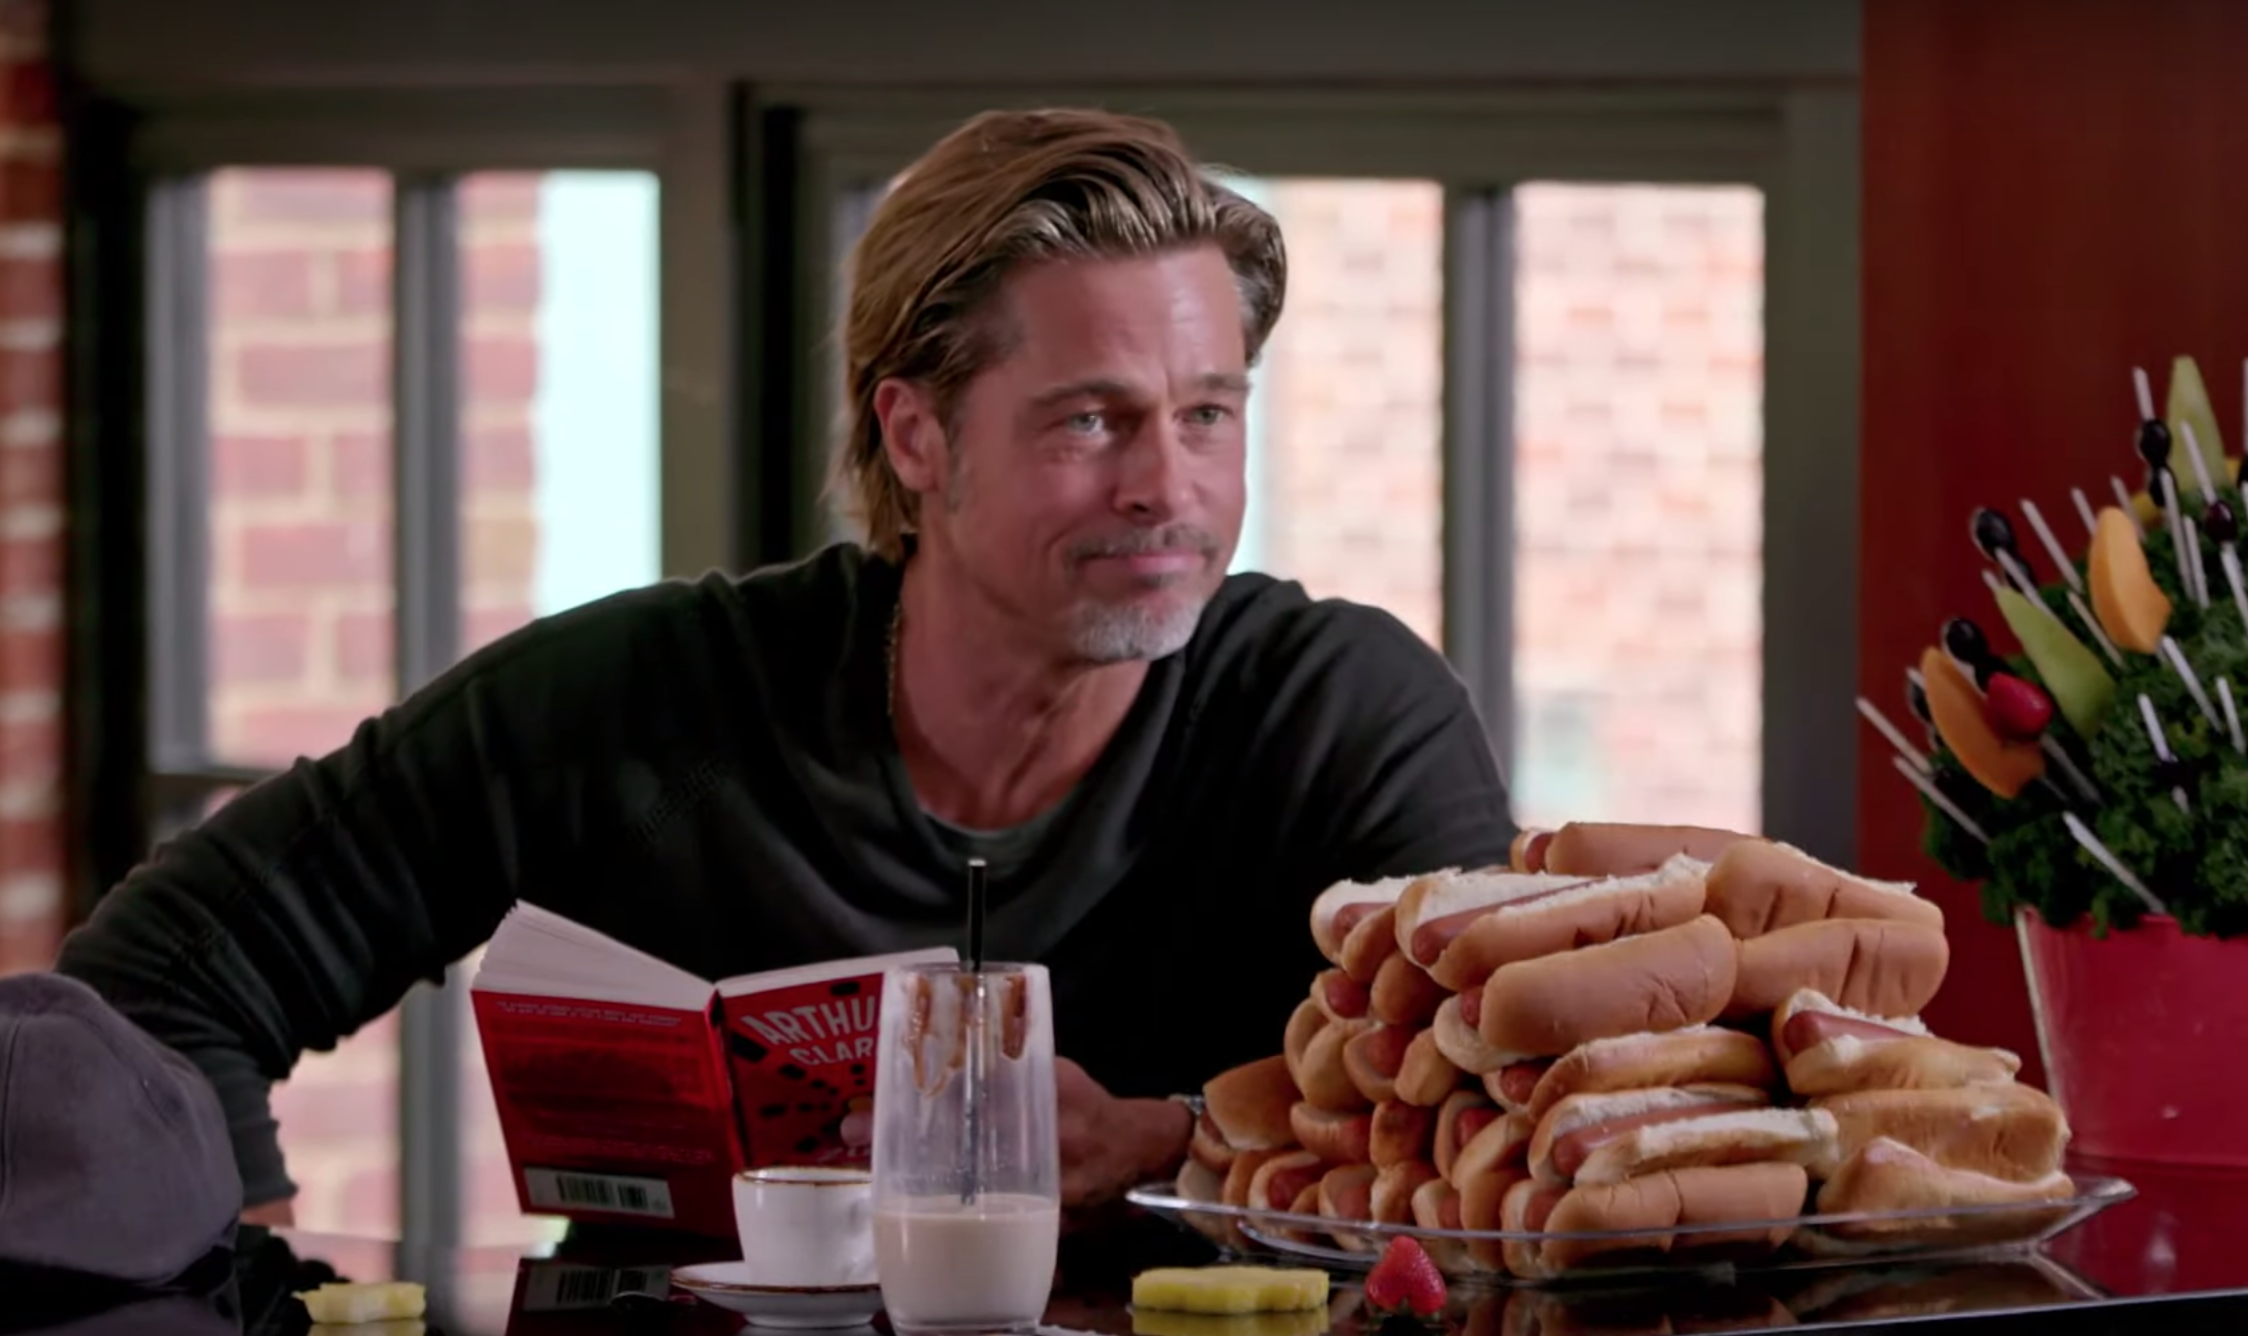 Watch Brad Pitt And Jimmy Fallon Have A Food Battle Involving 30 Hot Dogs